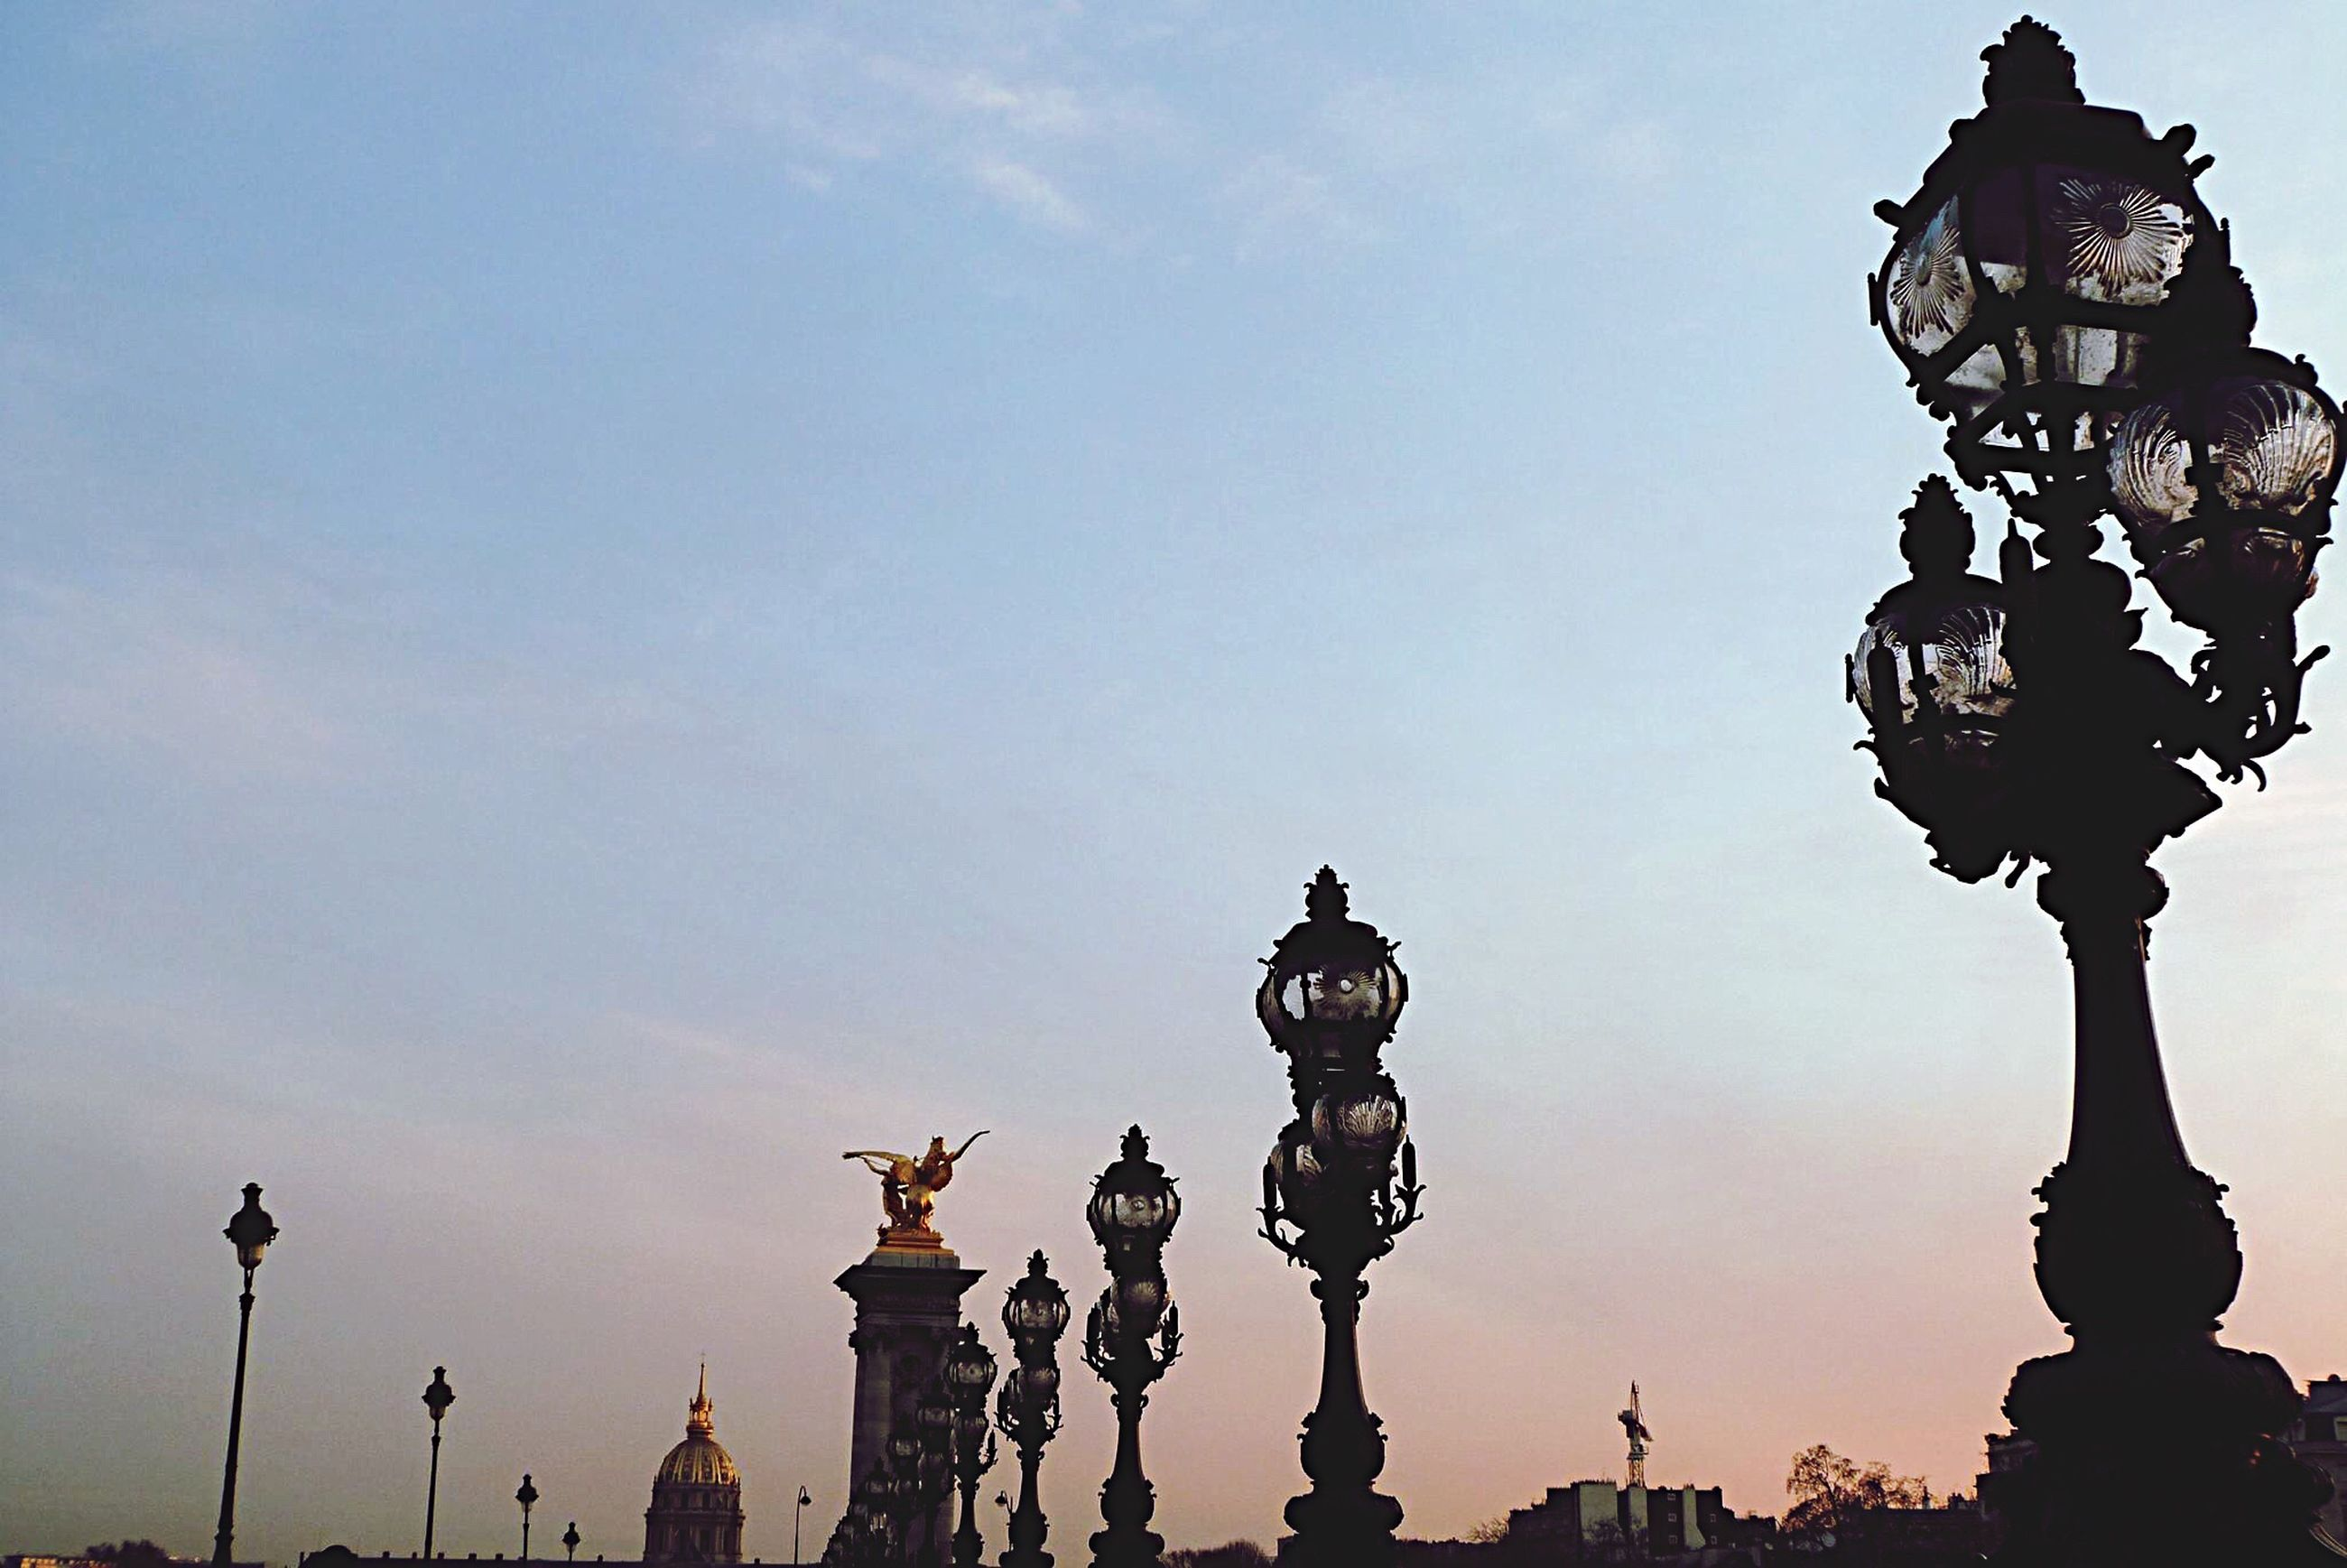 statue, low angle view, religion, art and craft, sculpture, street light, art, architecture, human representation, spirituality, lighting equipment, place of worship, high section, sky, creativity, travel destinations, lamp post, cloud, outdoors, tourism, history, famous place, no people